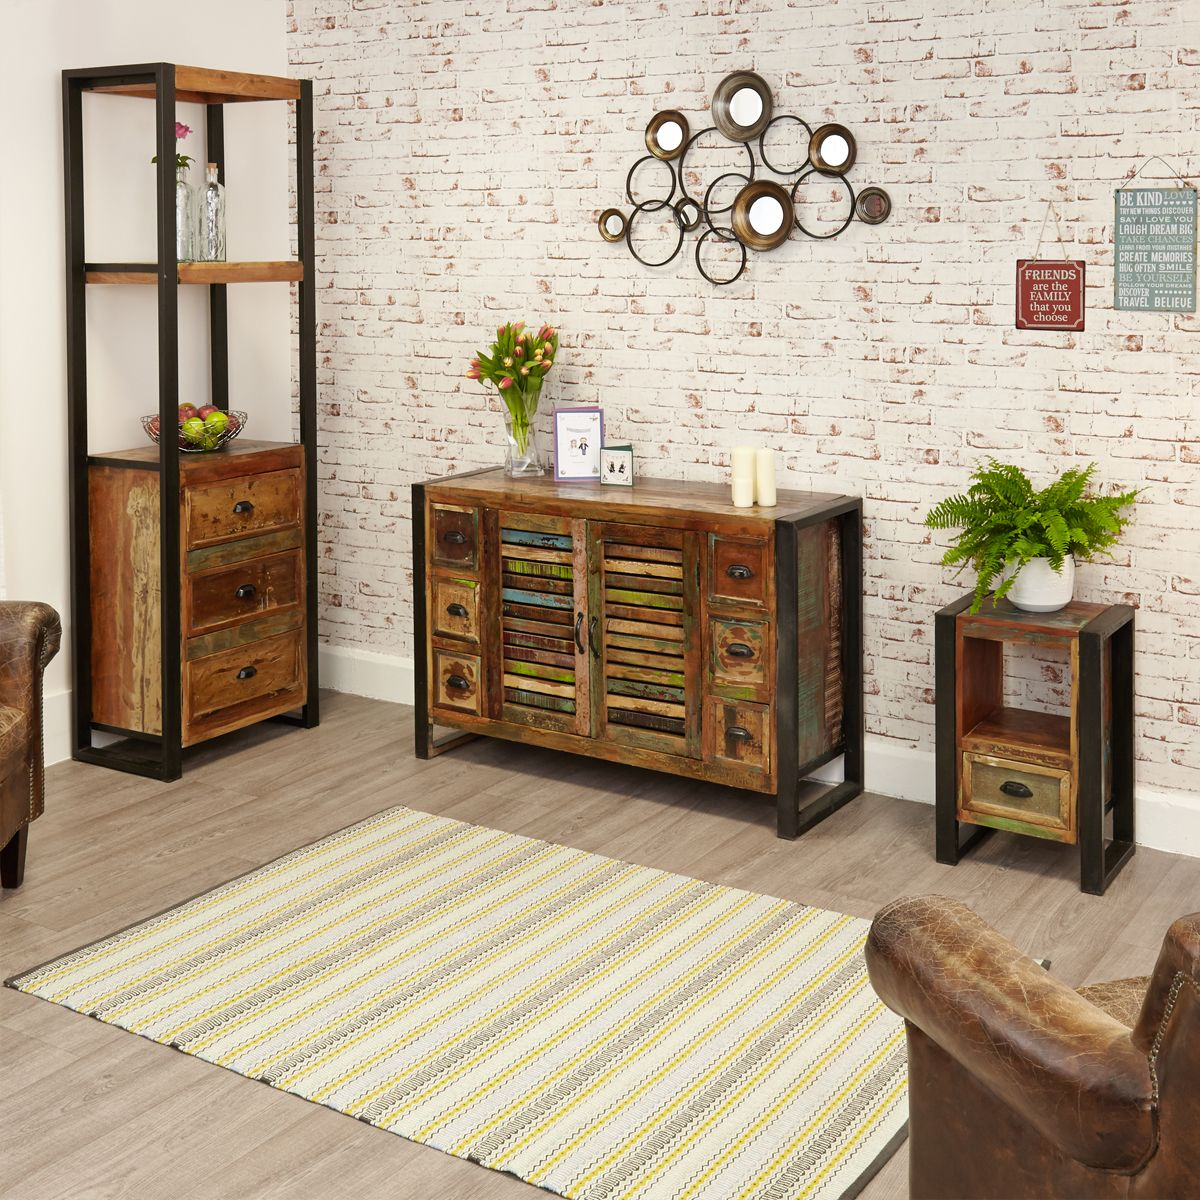 Urban Chic 6 Drawer Sideboard Wooden Furniture Store